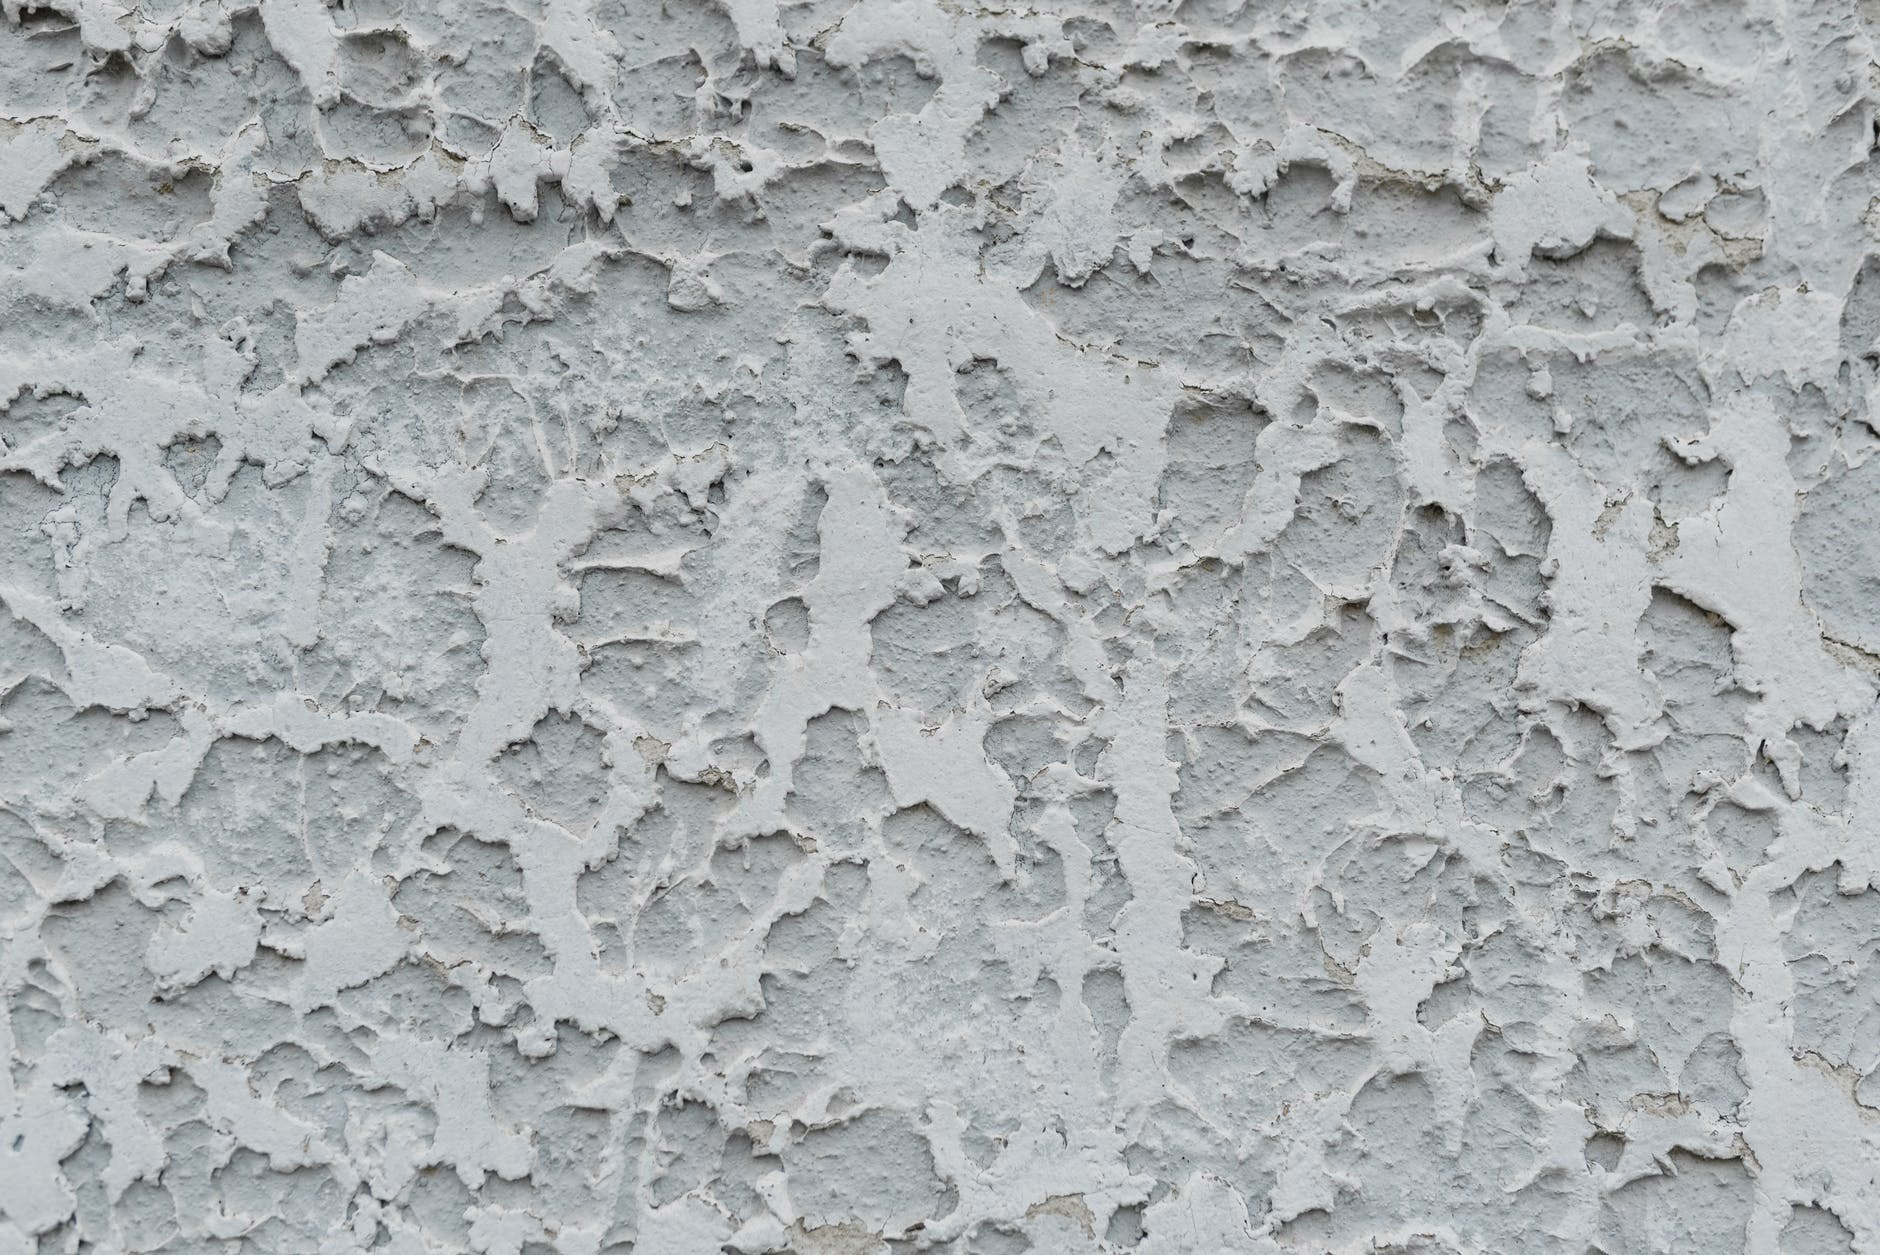 cracked gray stucco wall with cracked surface